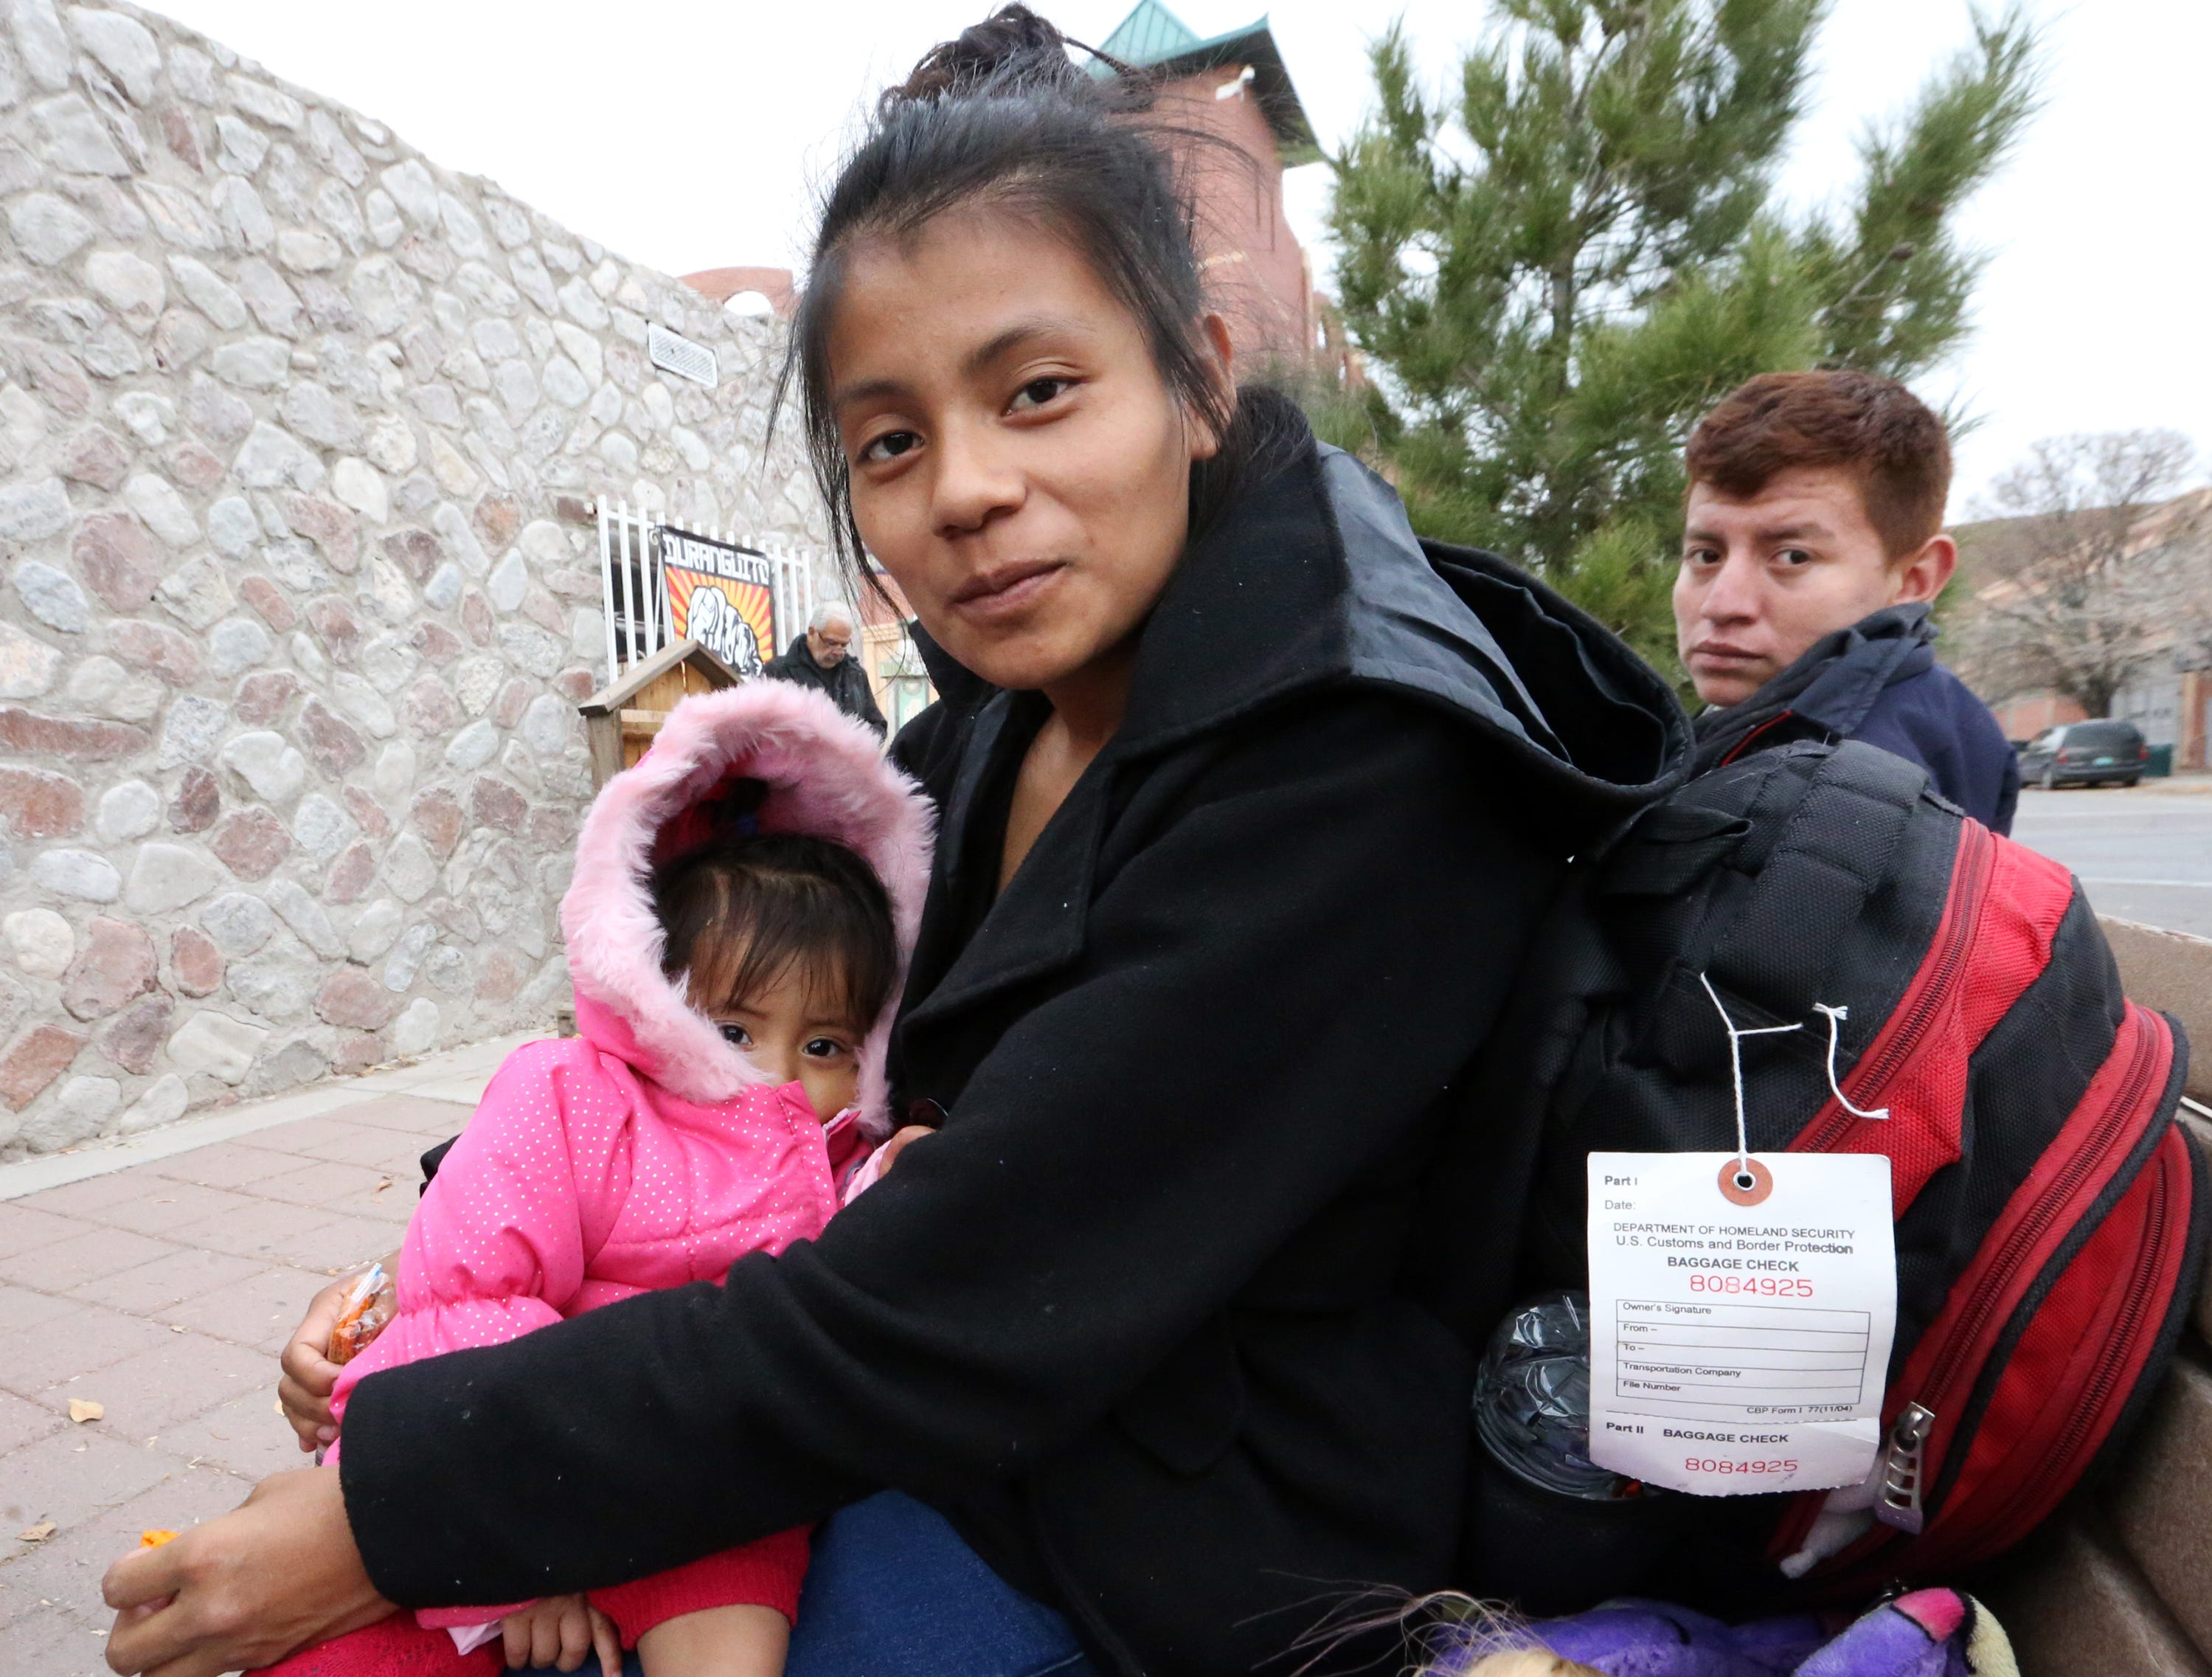 Juana Juan Diego said she left Guatemala City 20 days ago with her 1-year-old daughter, Dulce Juan Diego, as they sit outside the Rock House at Leon Street and Overland Ave. Christmas Day Tuesday, Dec. 25. She was one of a group of 100 immigrants dropped off there by Immigration and Customs Enforcement.  She hopes of making it to the state of Tennessee where she has relatives, she said. She carries a baggage check tag on her backpack from the U.S. Department of Homeland Security, U.S. Customs and Border Protection.